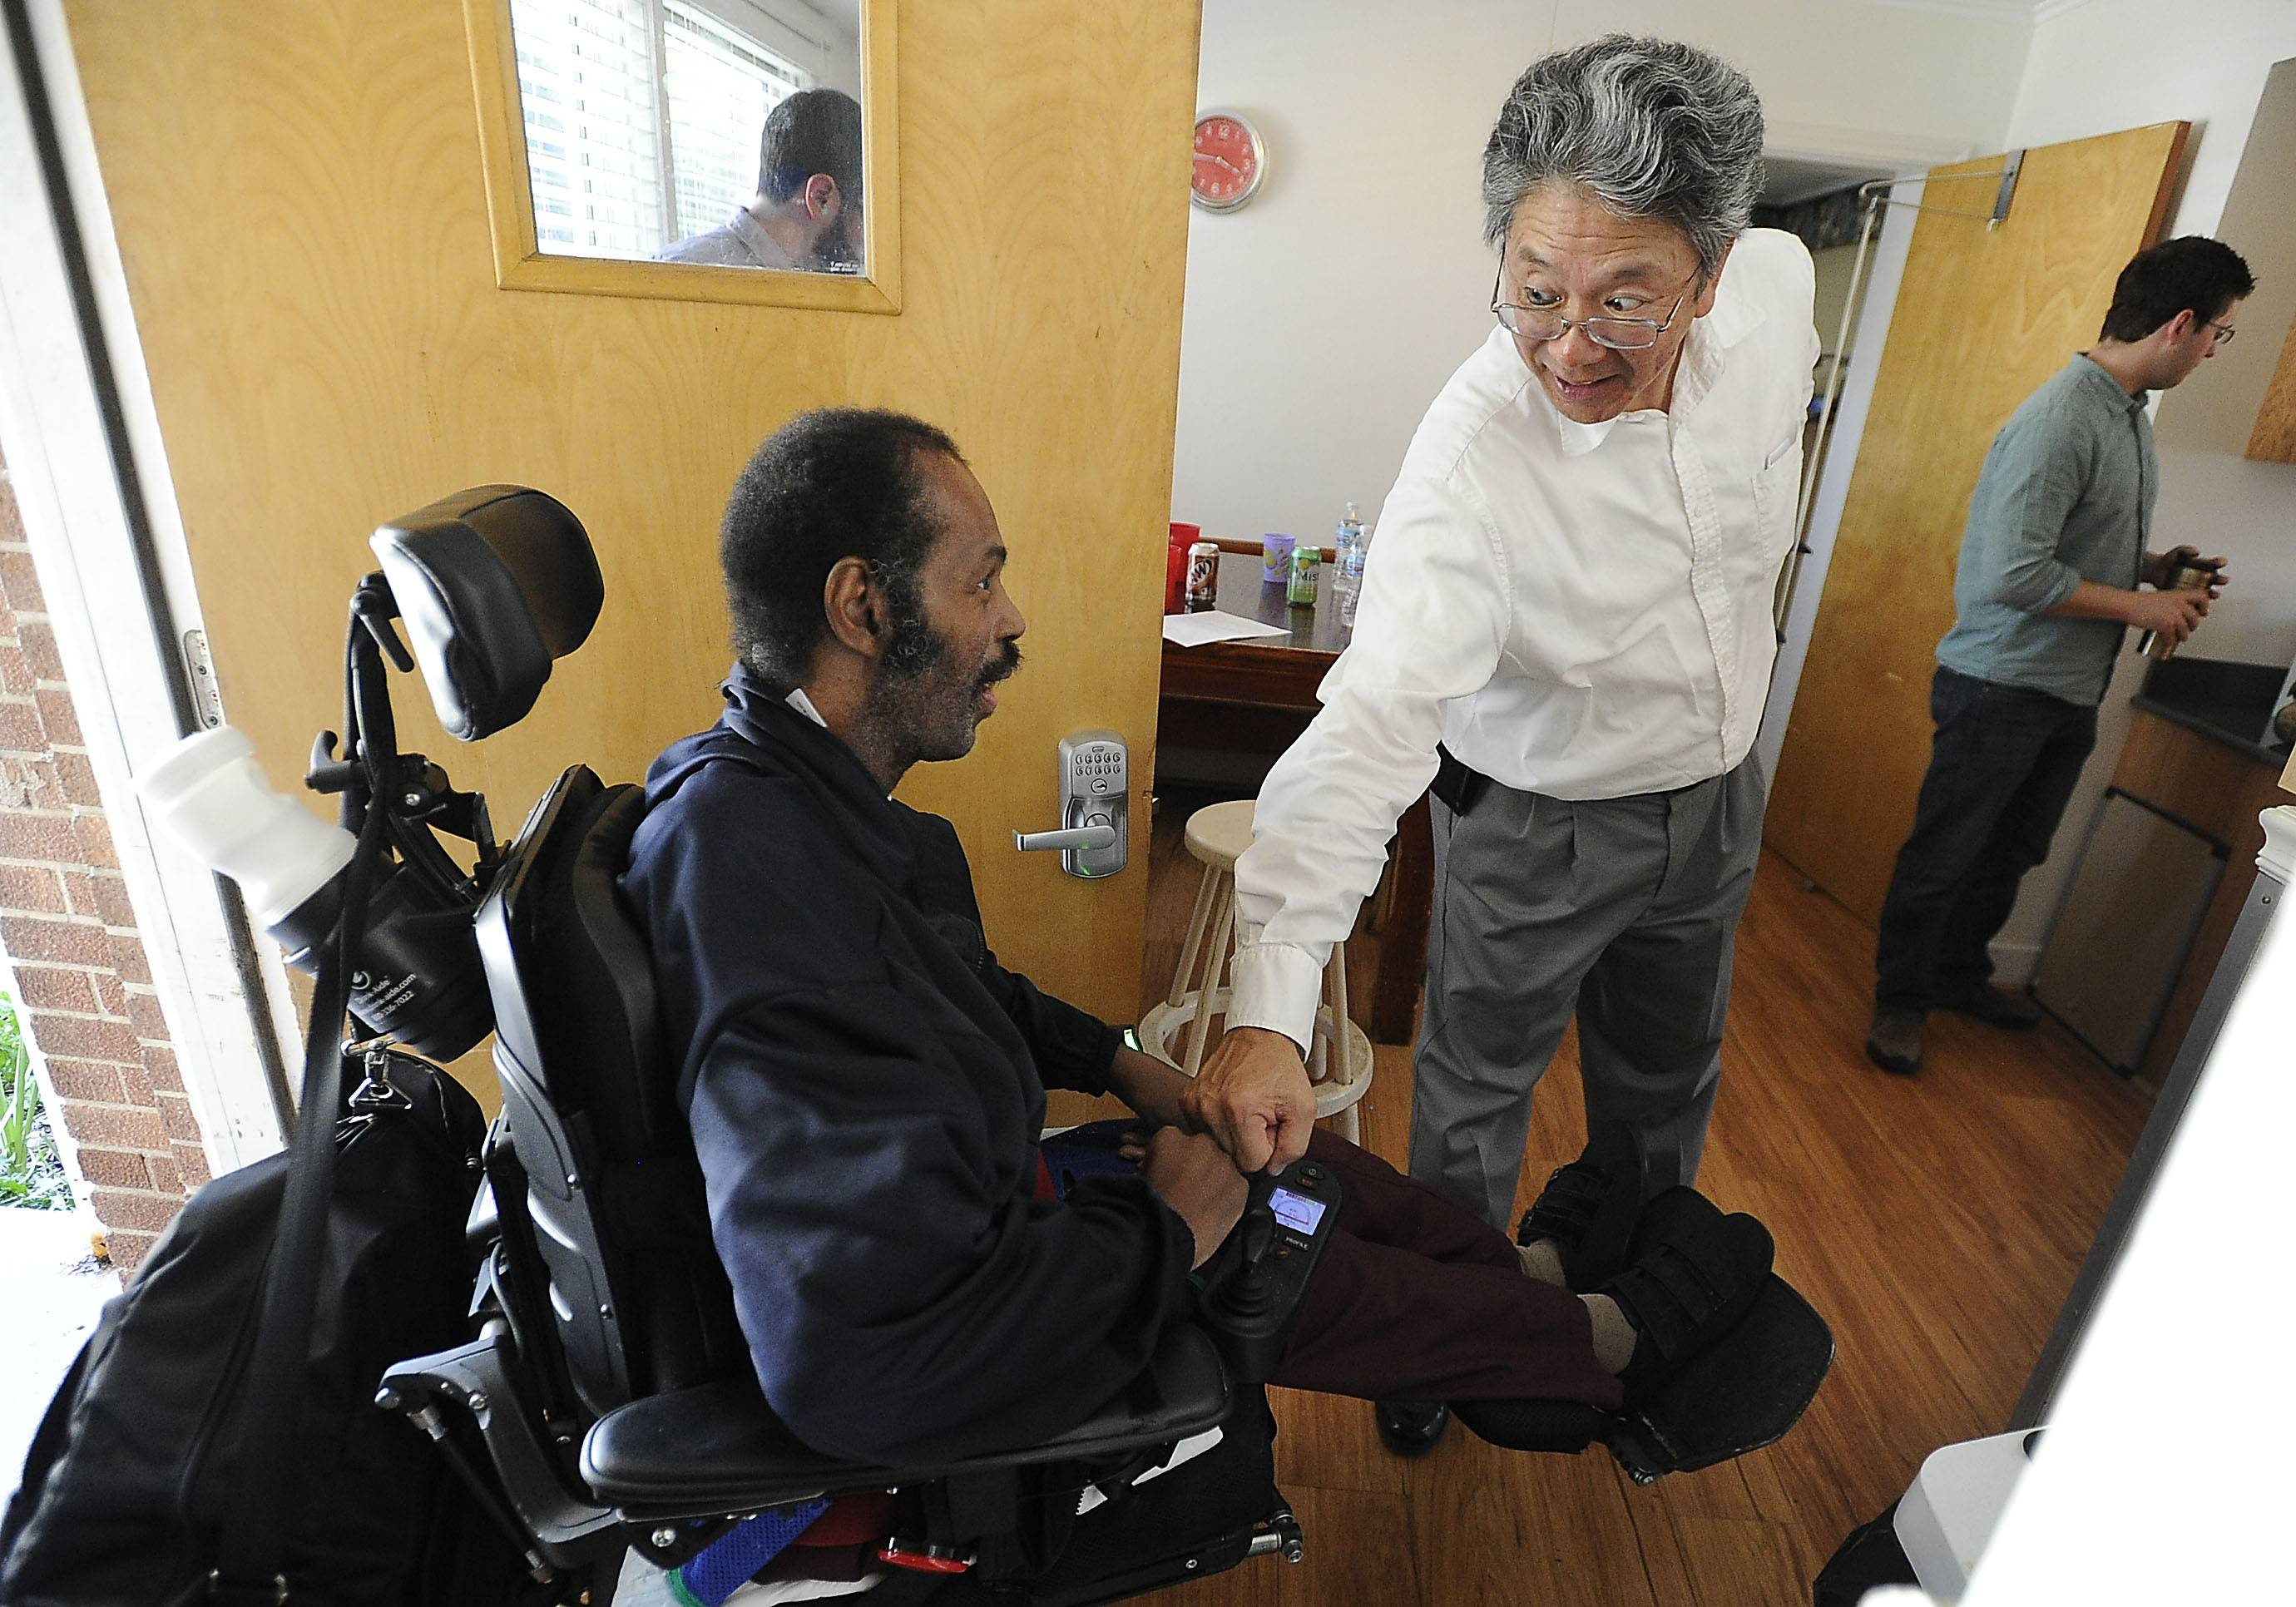 Cambridge House resident John Davis gives a fist bump to Robert Okazaki of Avenues to Independence.